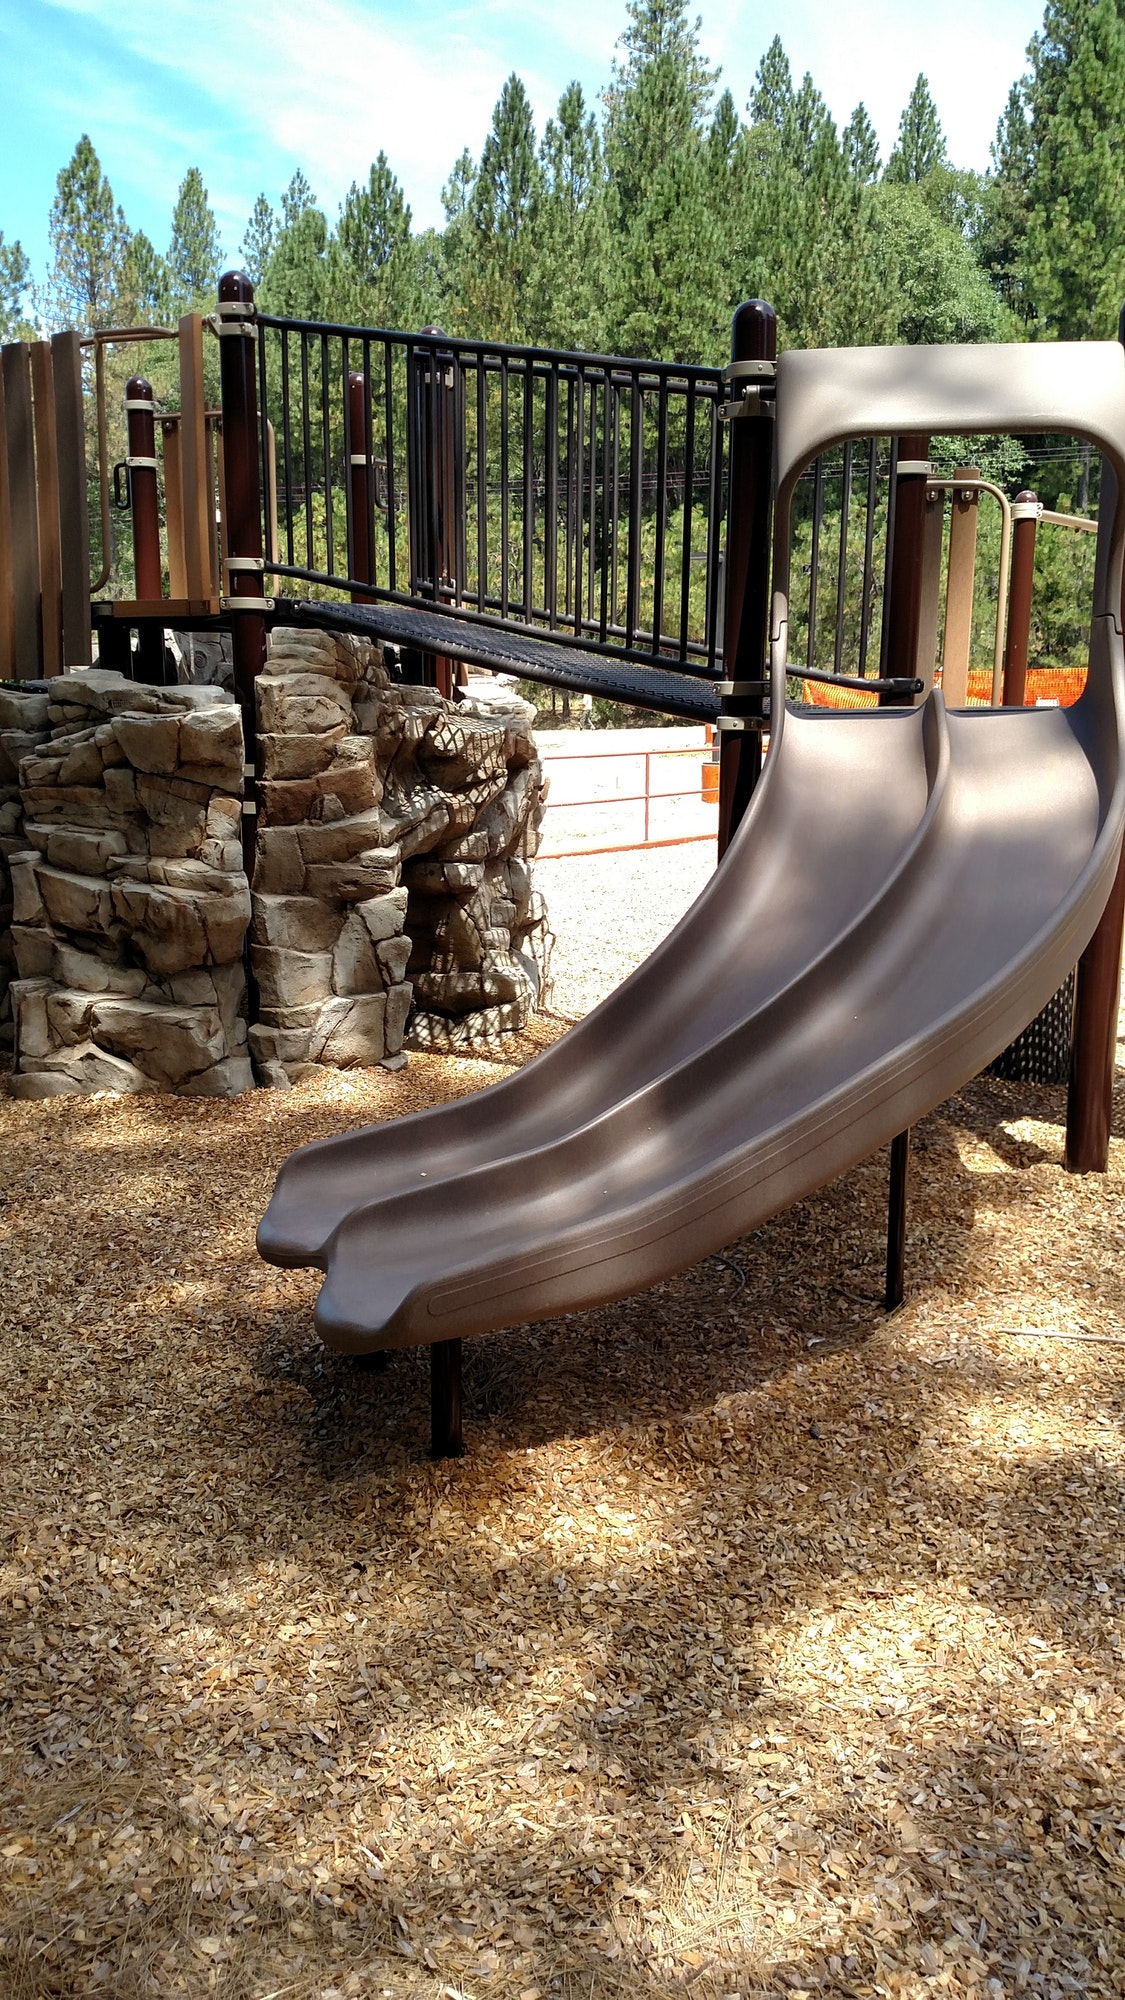 May contain: play area, playground, slide, and toy